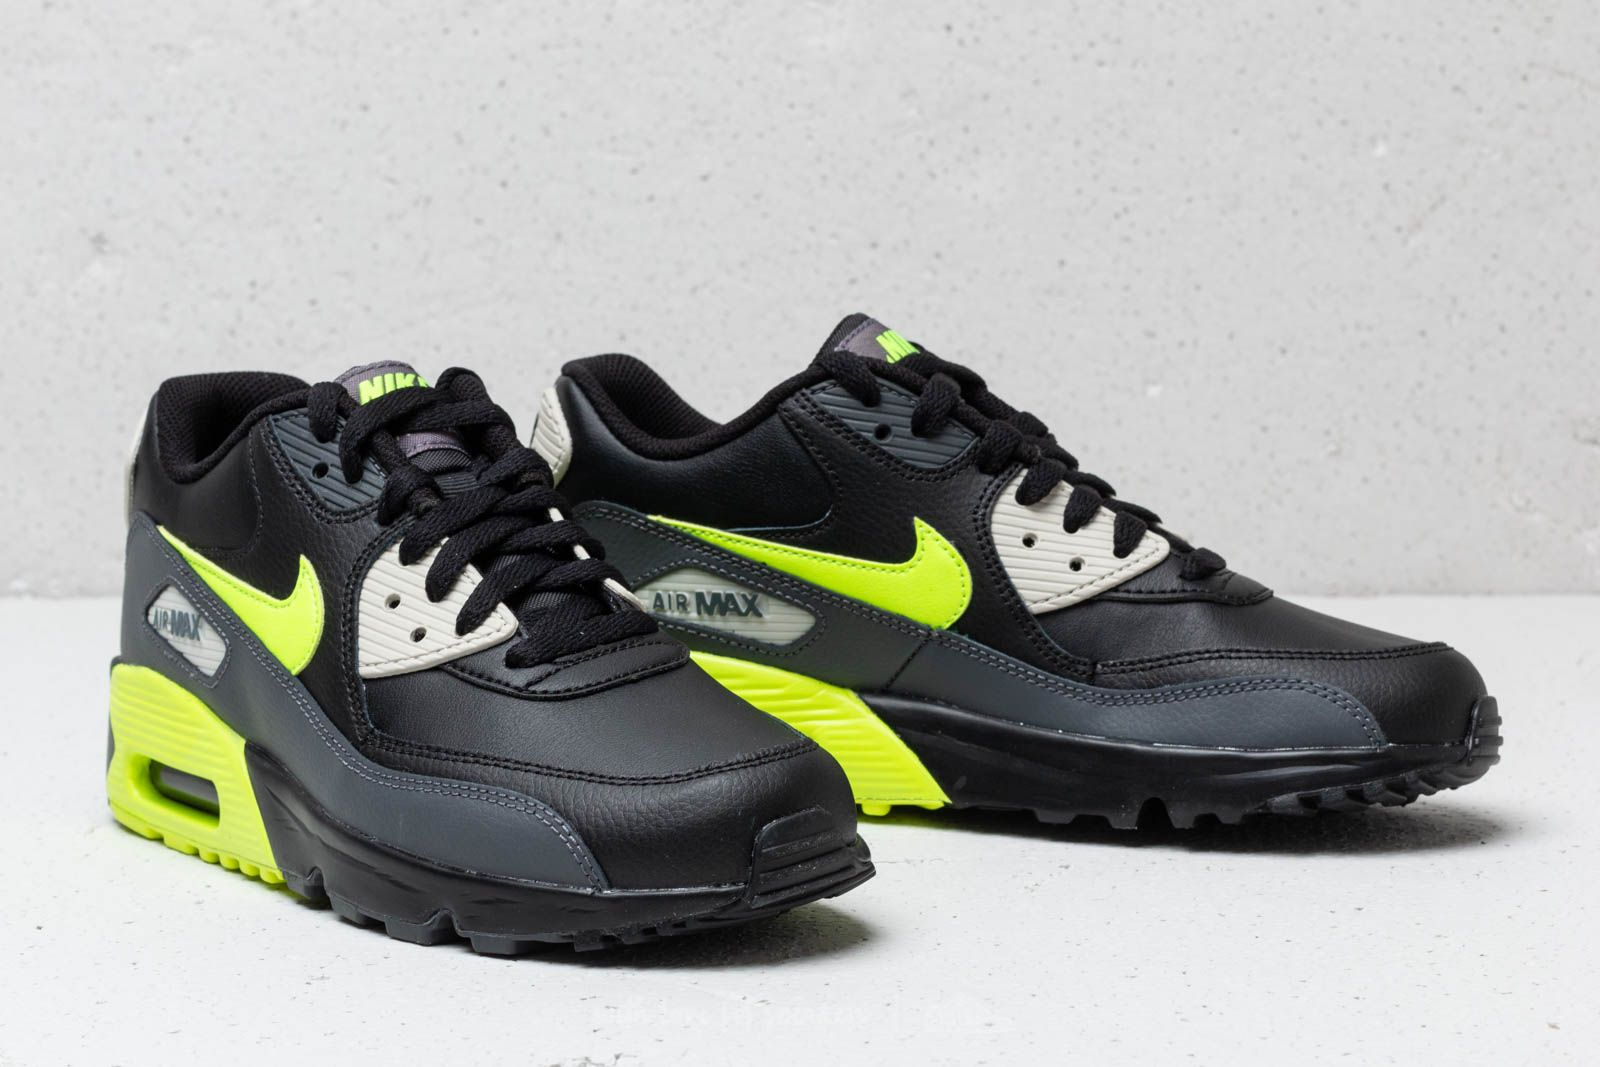 big sale 2ce2f 8a847 ... overall order nike air max 90 leather gs dark grey vold black at a  bccee e8c56 ...